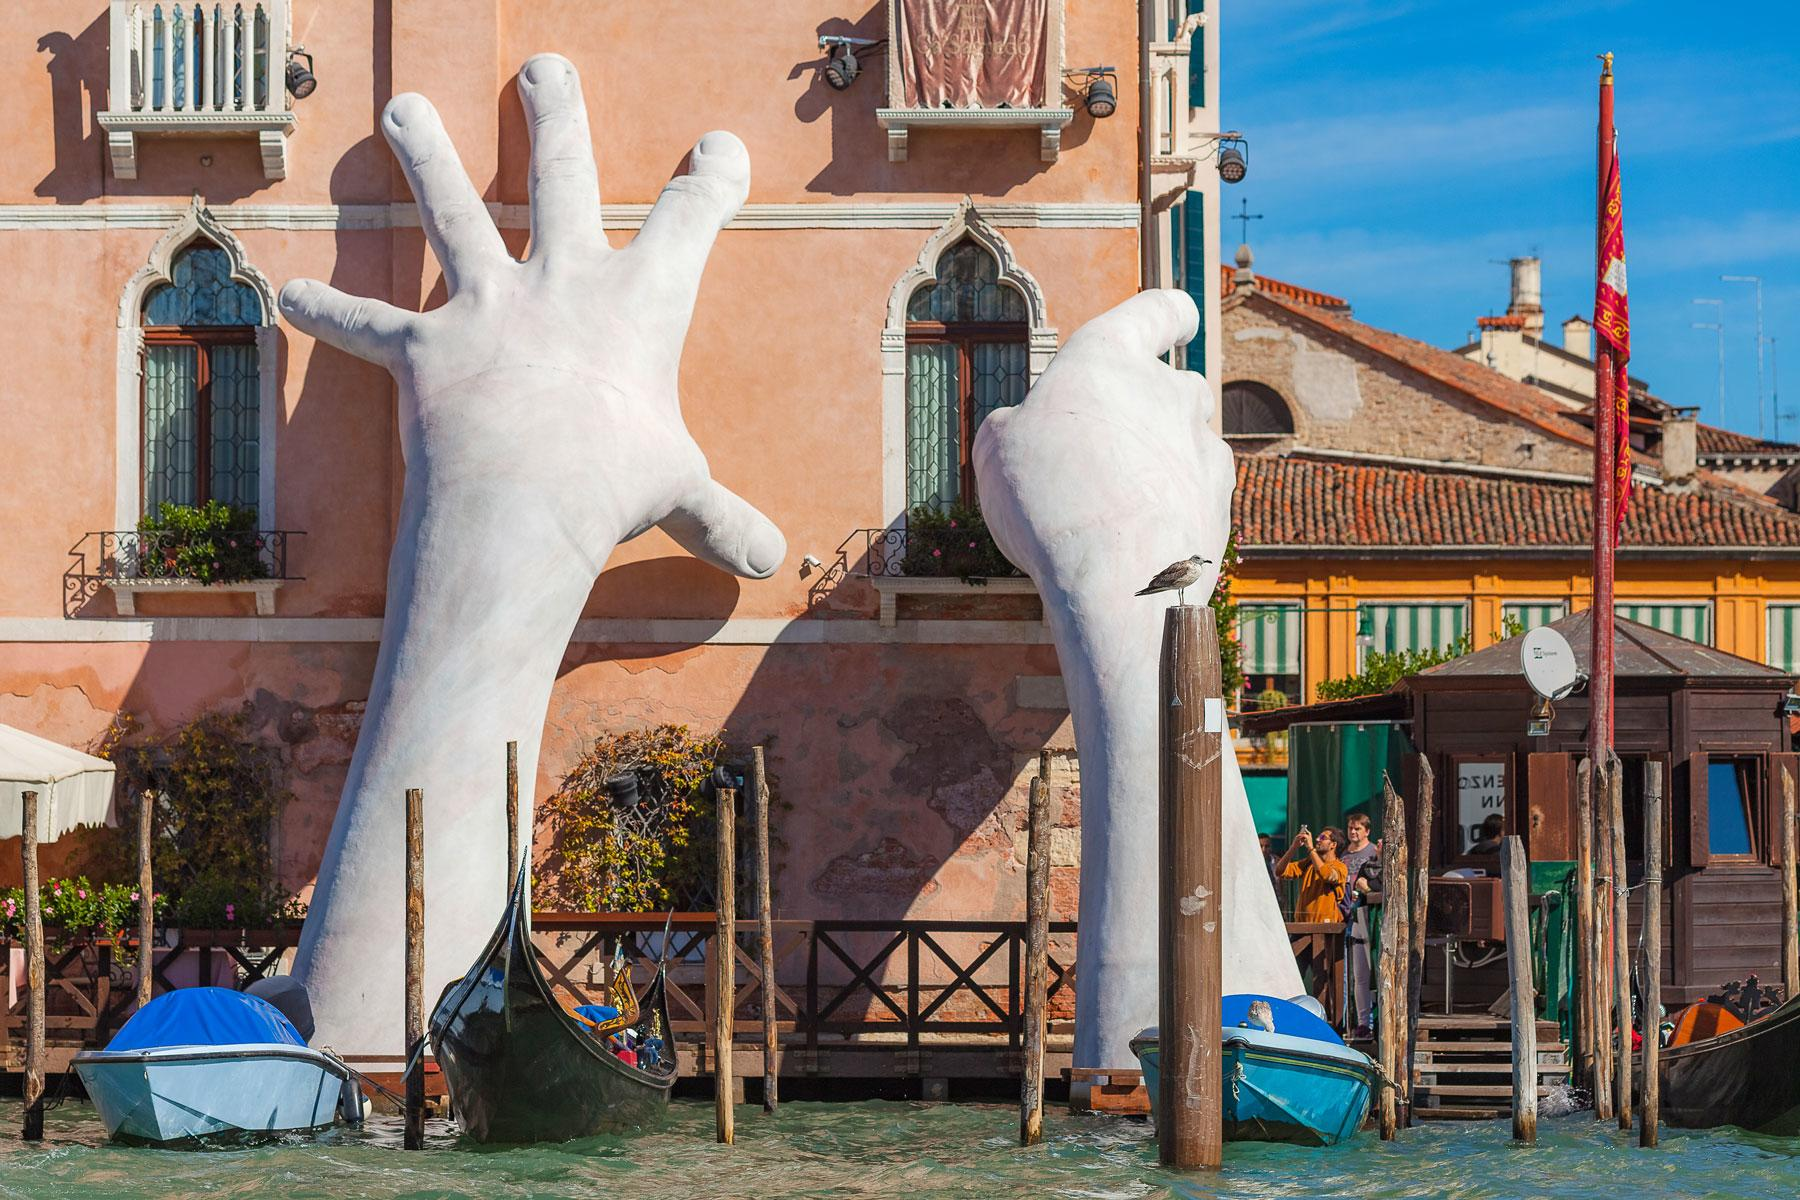 Can You Even Handle These Gigantic Hand Statues of the World